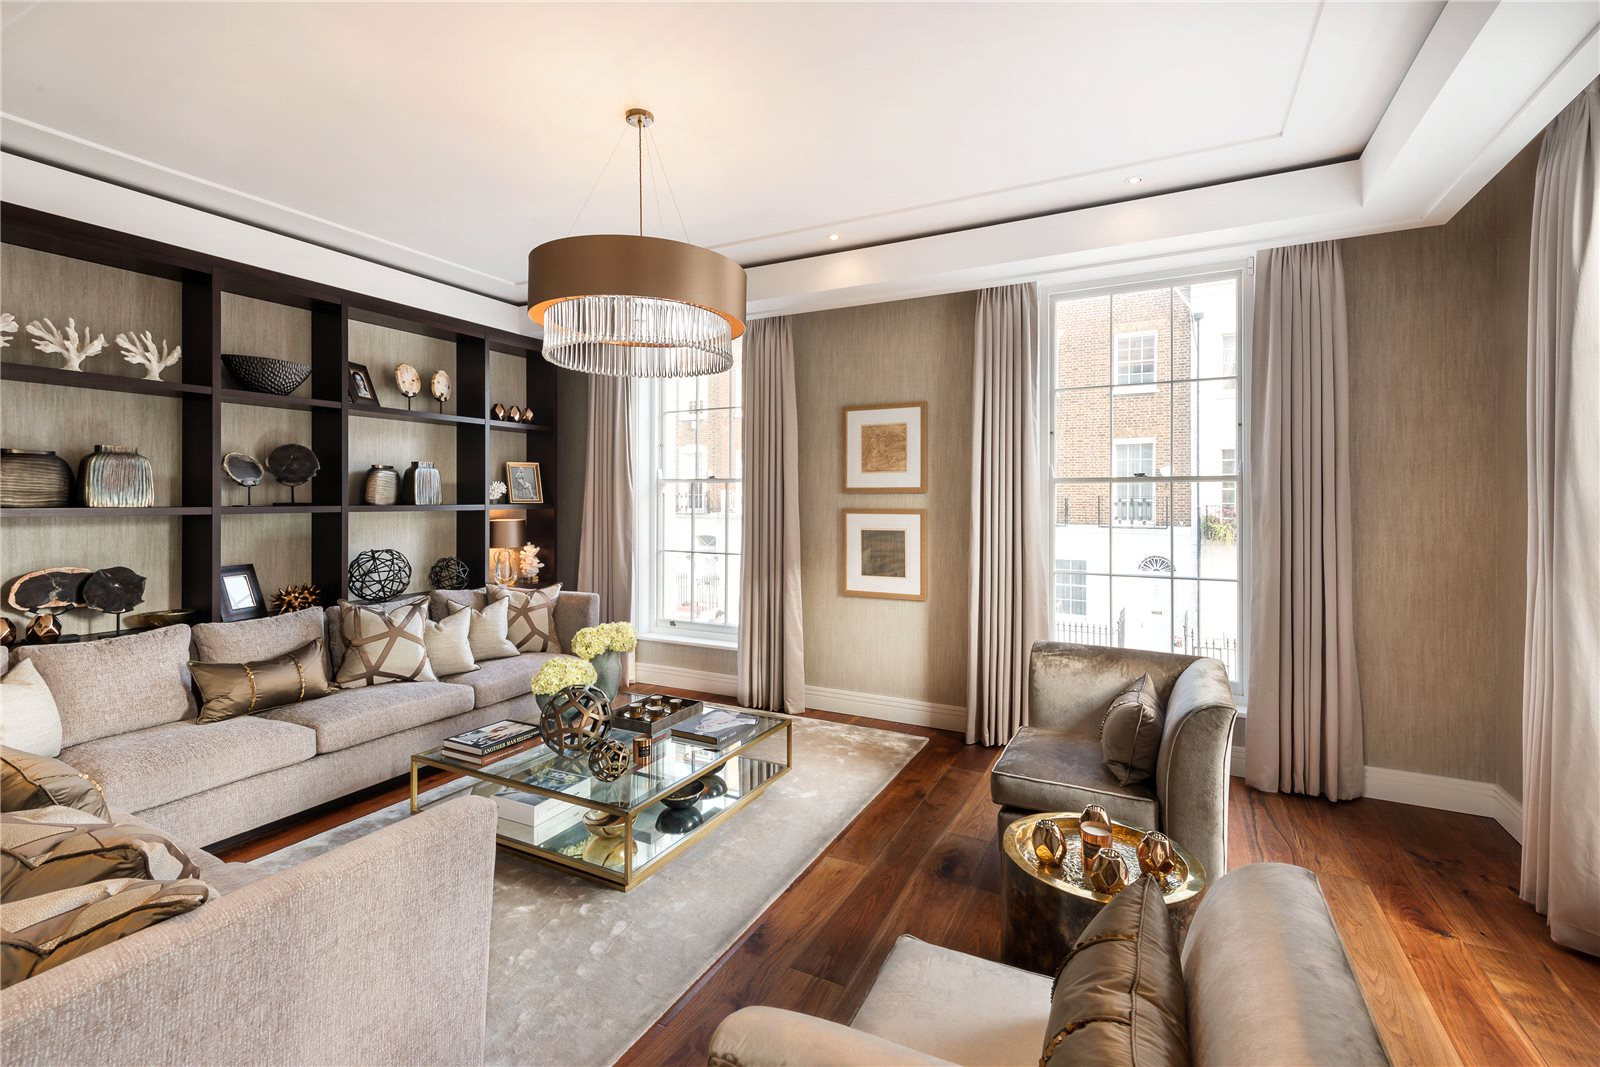 Single Family Home for Sale at Montpelier Street, London, SW7 London, England